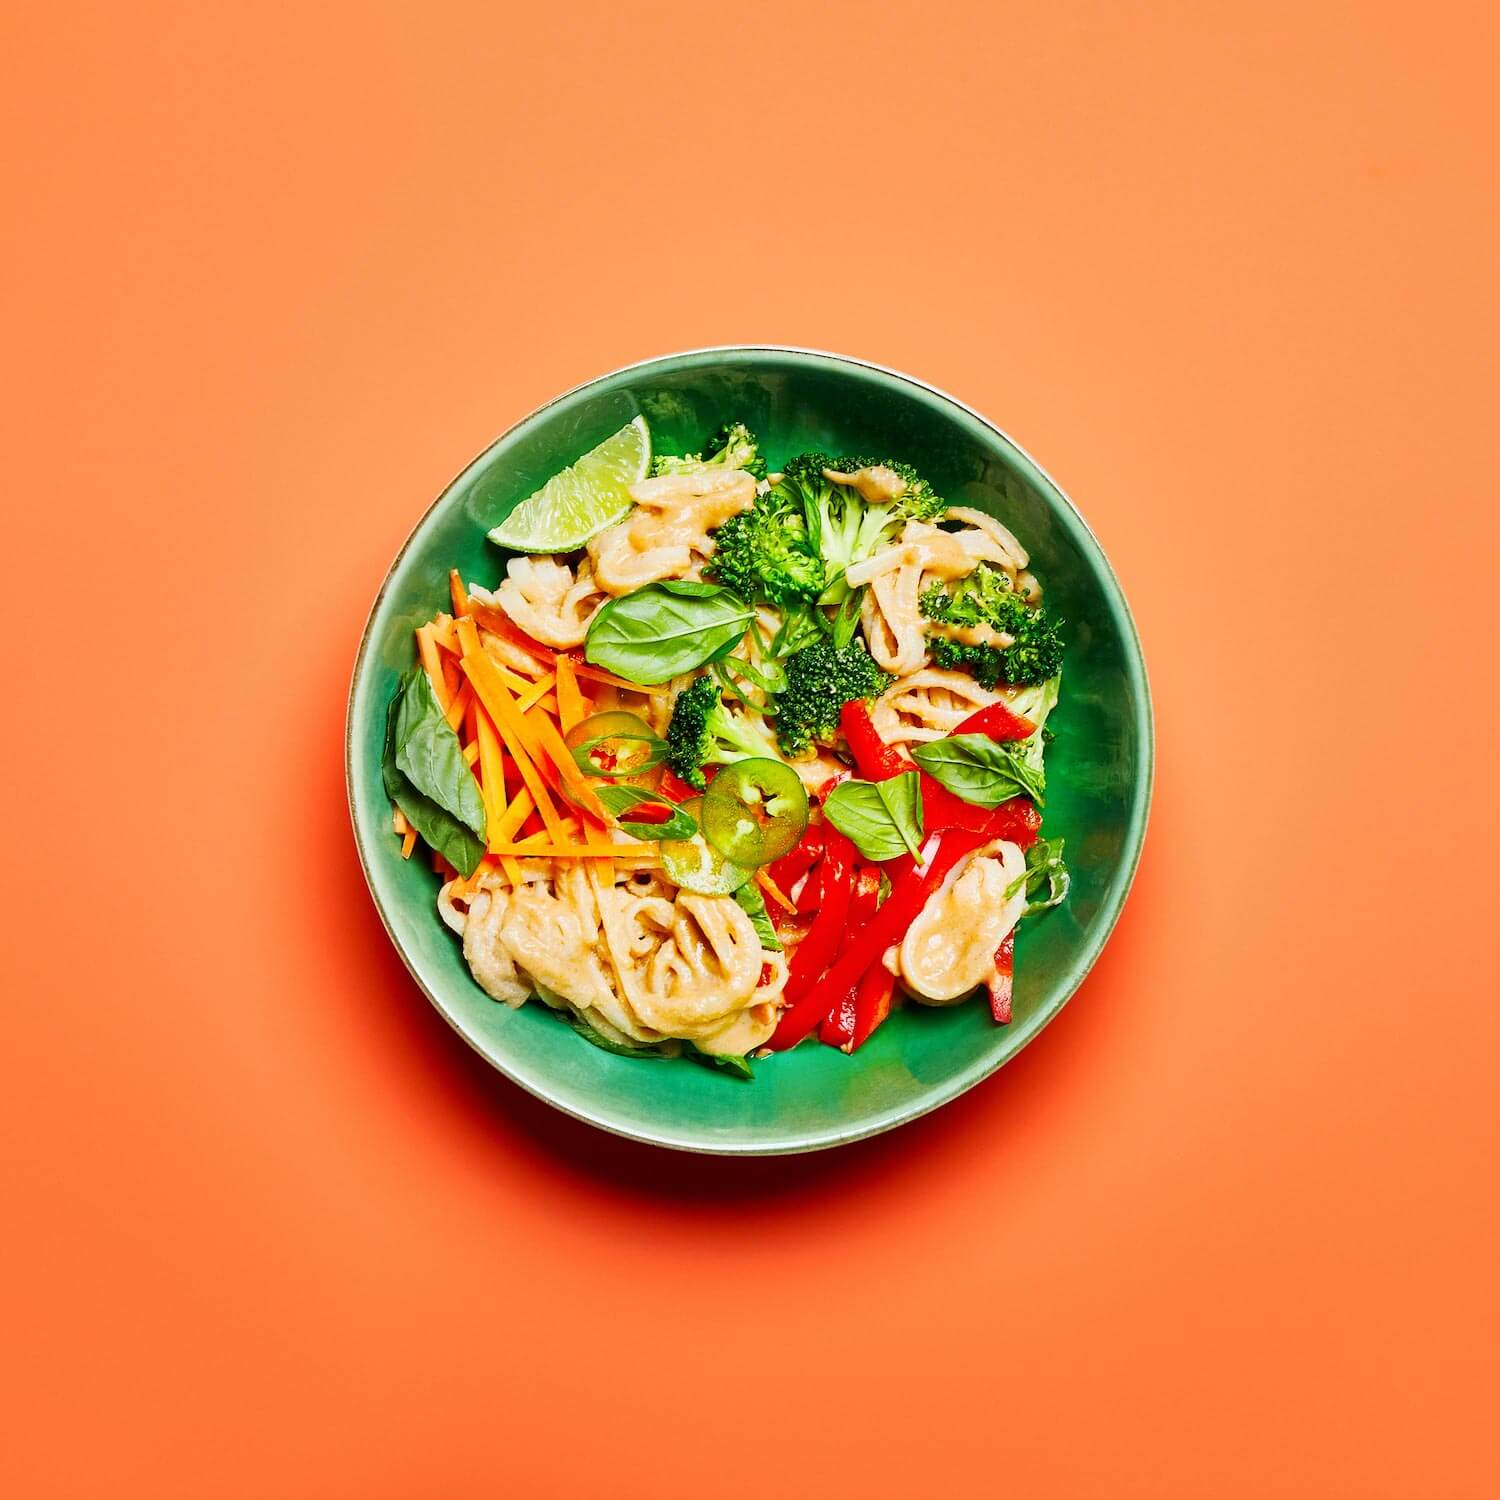 Tangy Ginger Noodles in a dish on an orange background.